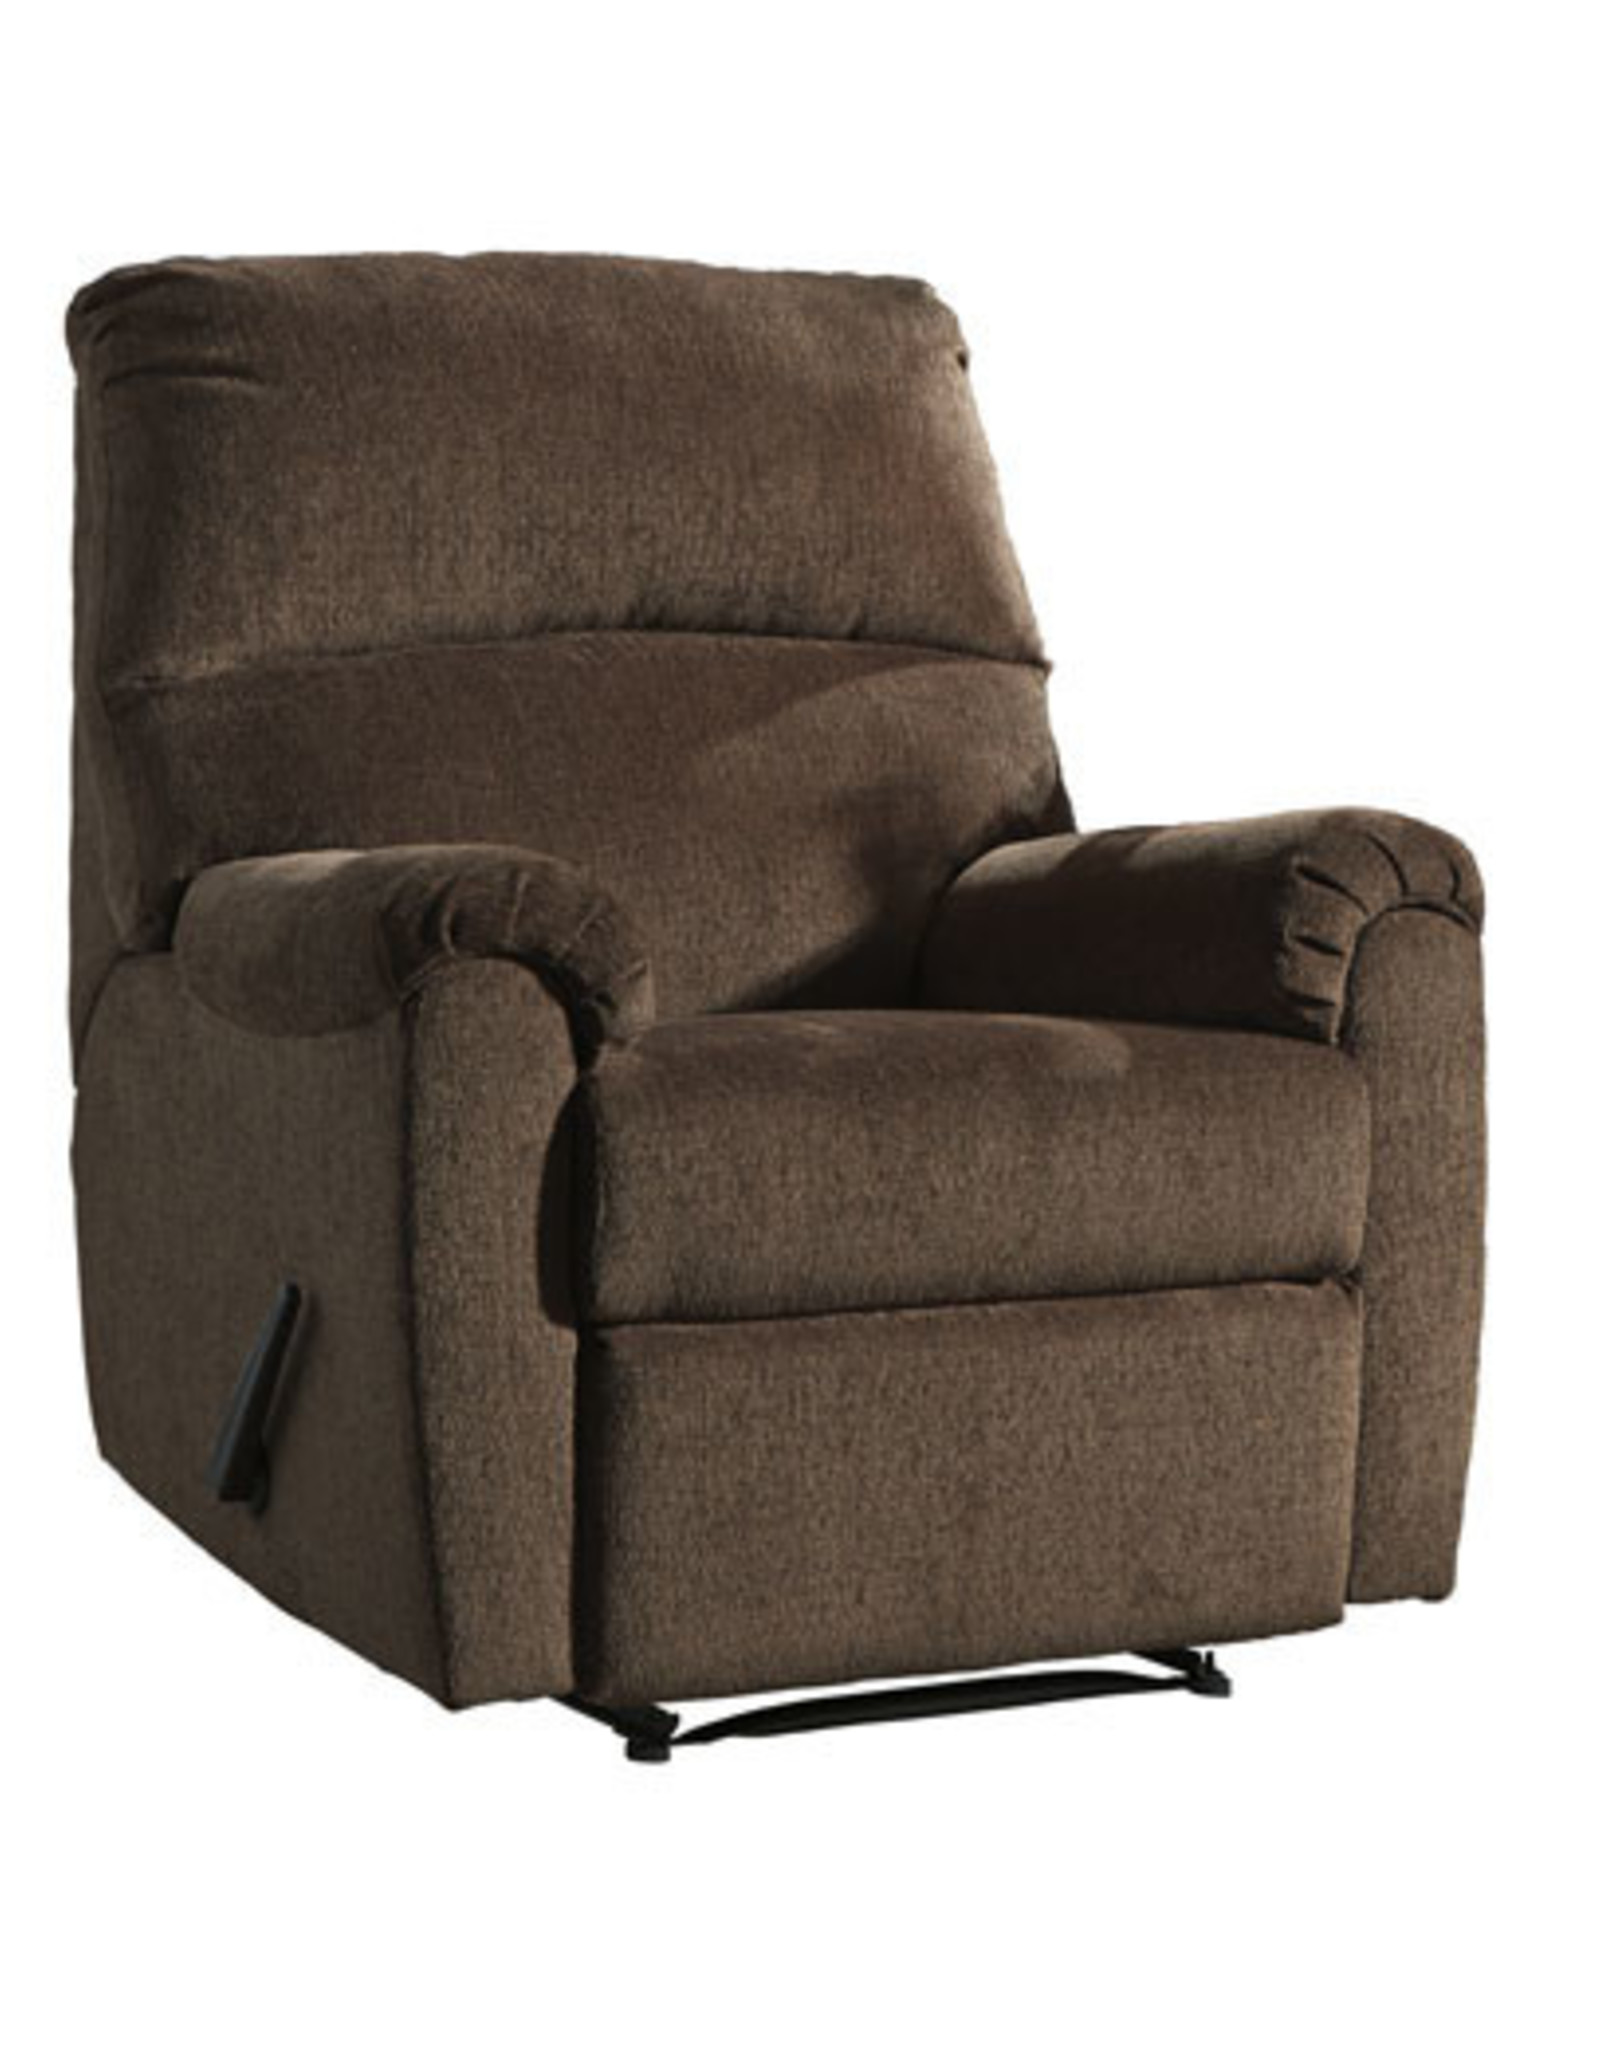 Nerviano Zero Wall Recliner (Chocolate) - Online Only